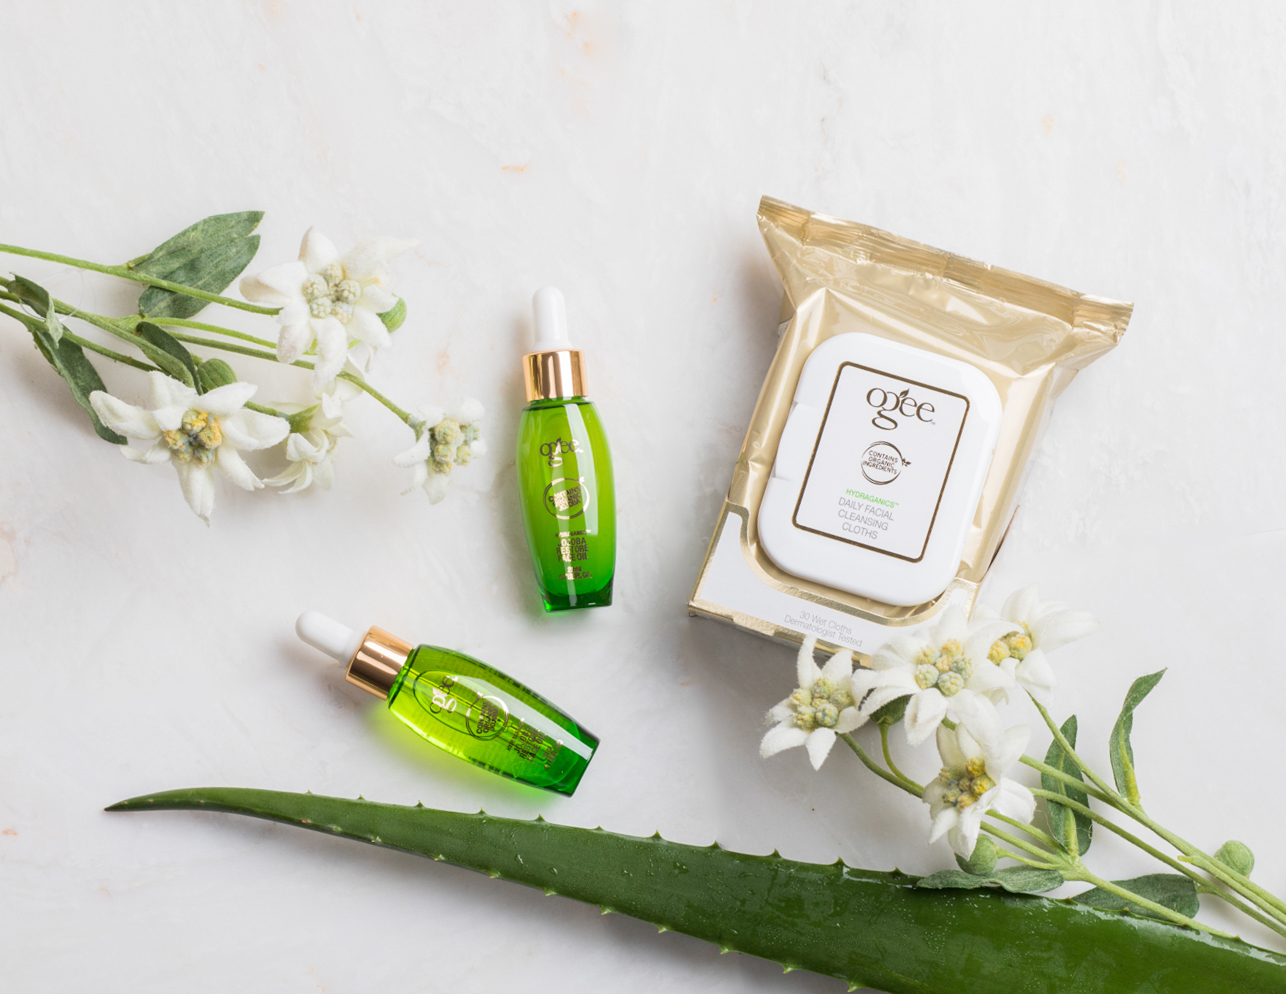 Ogee Organic Obsession Bundle trial